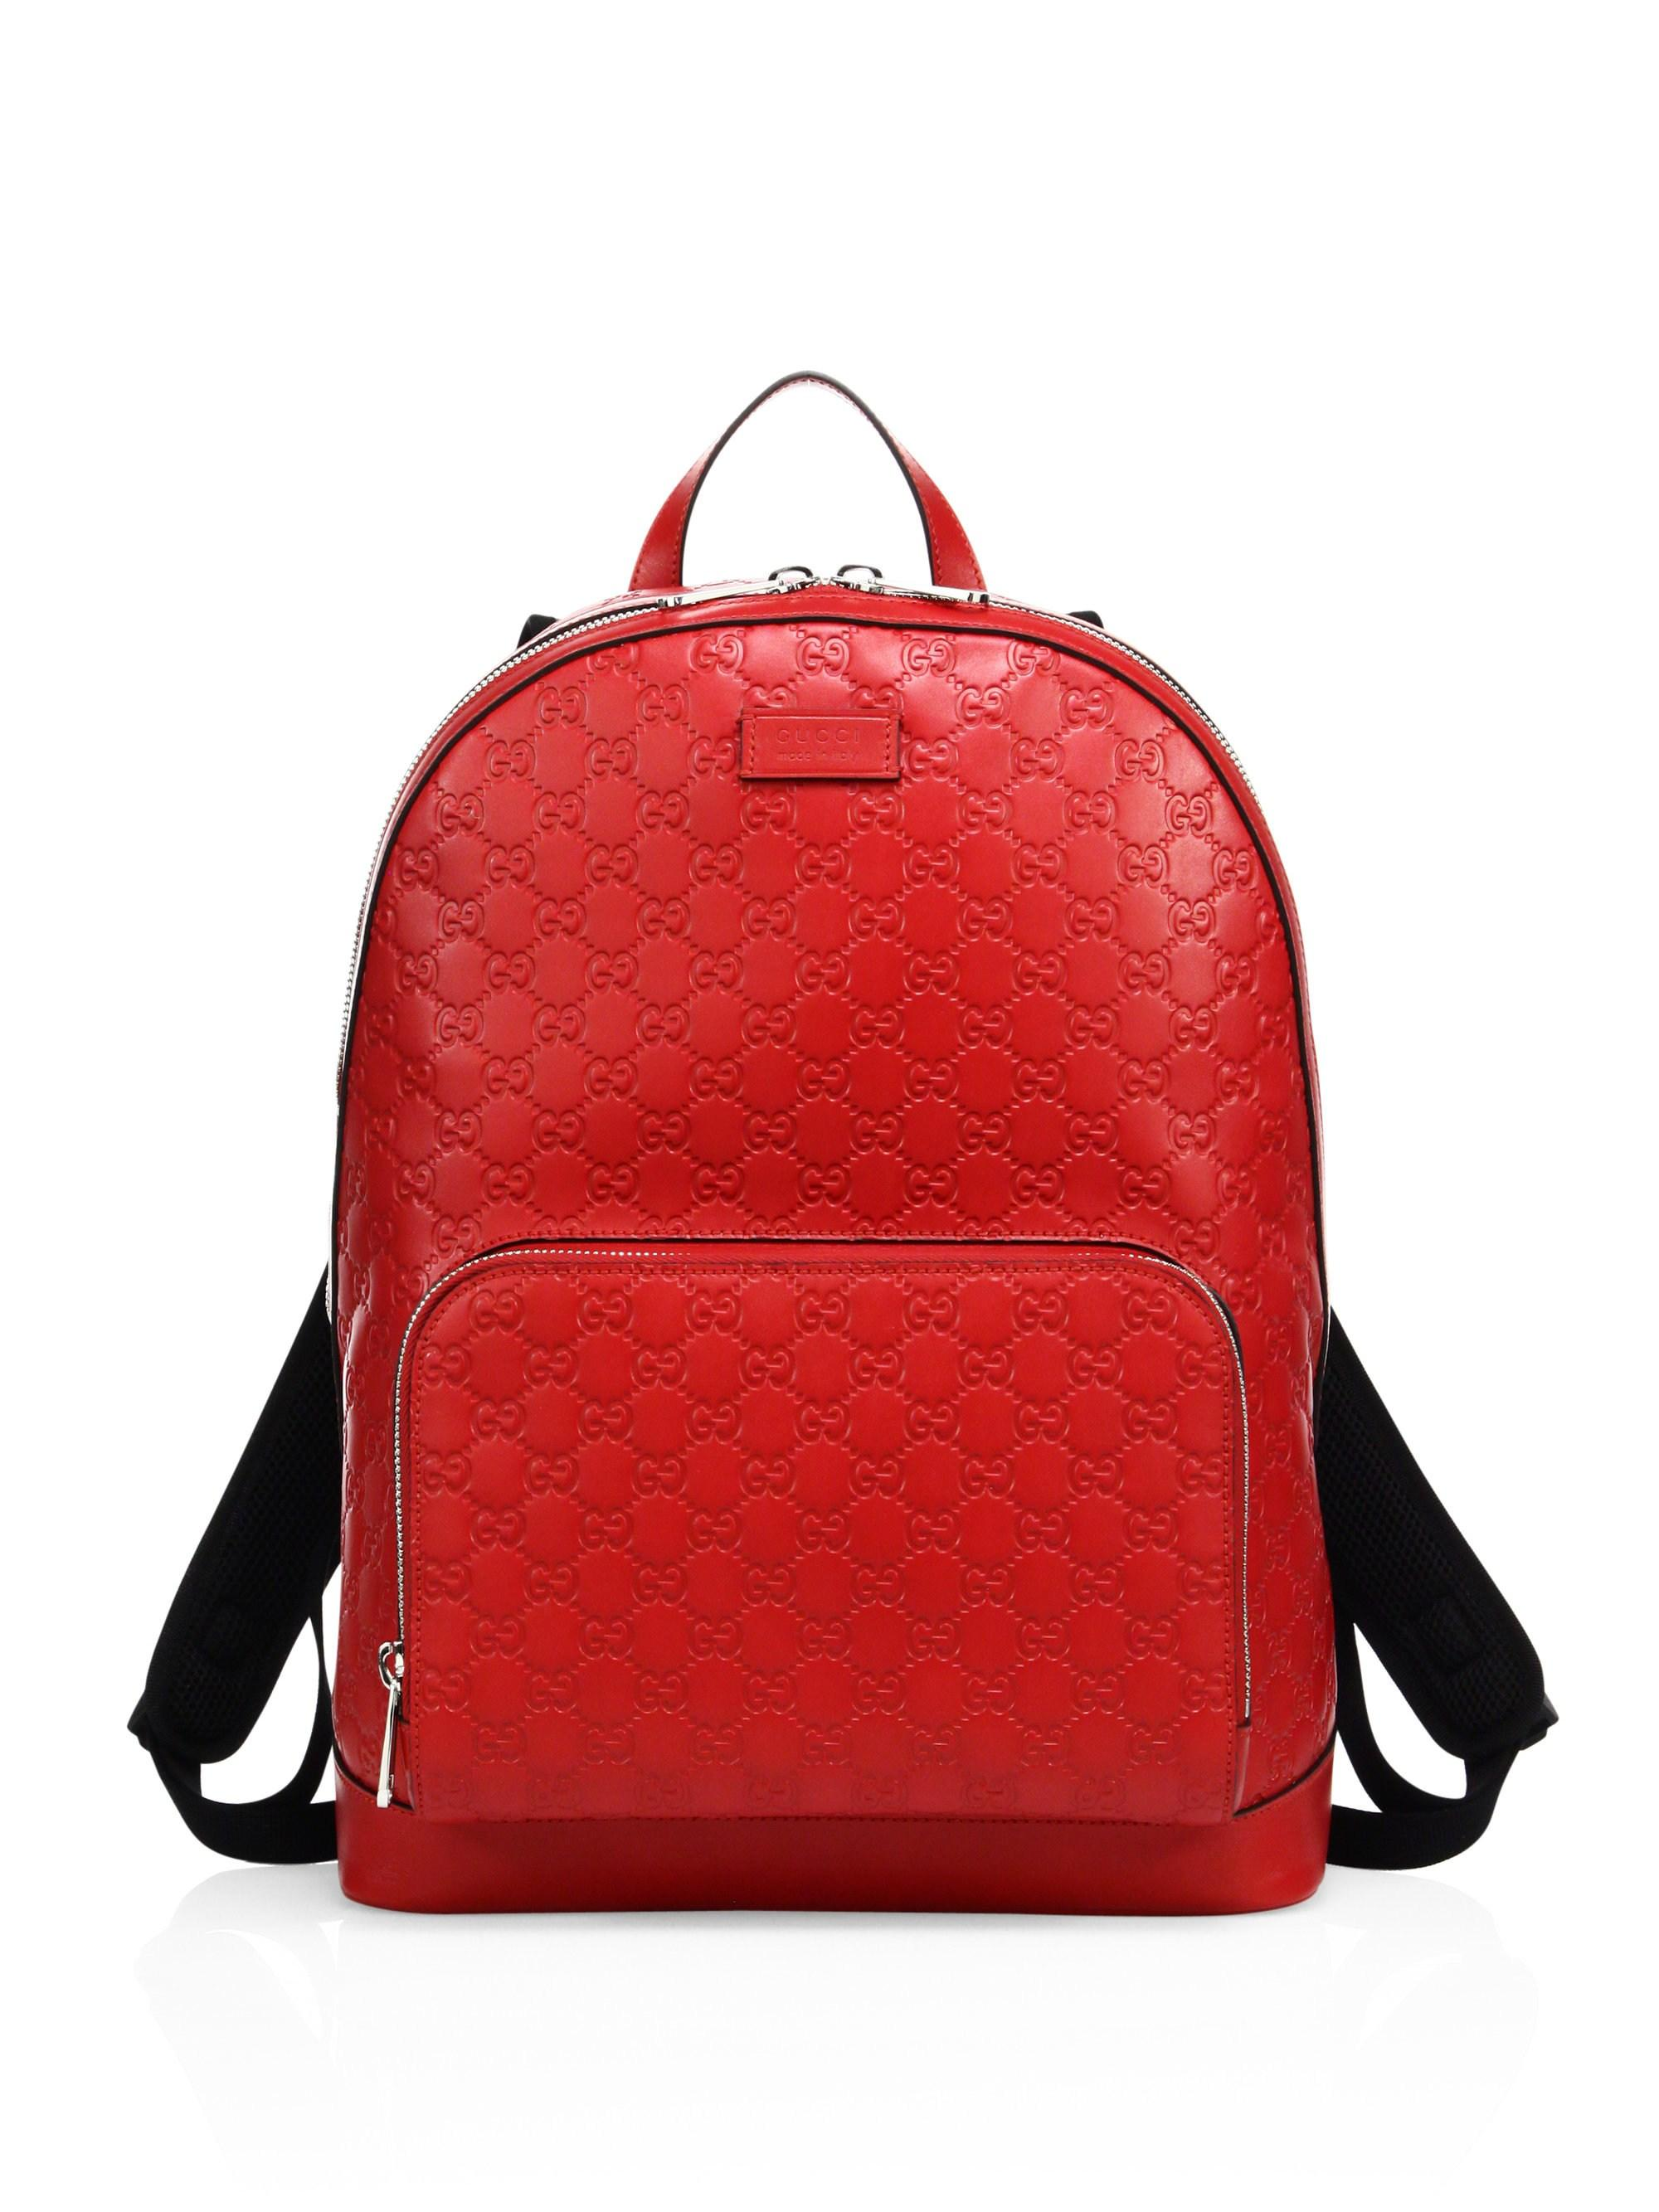 493815608b39 Gucci Signature Embossed Leather Backpack in Red for Men - Lyst